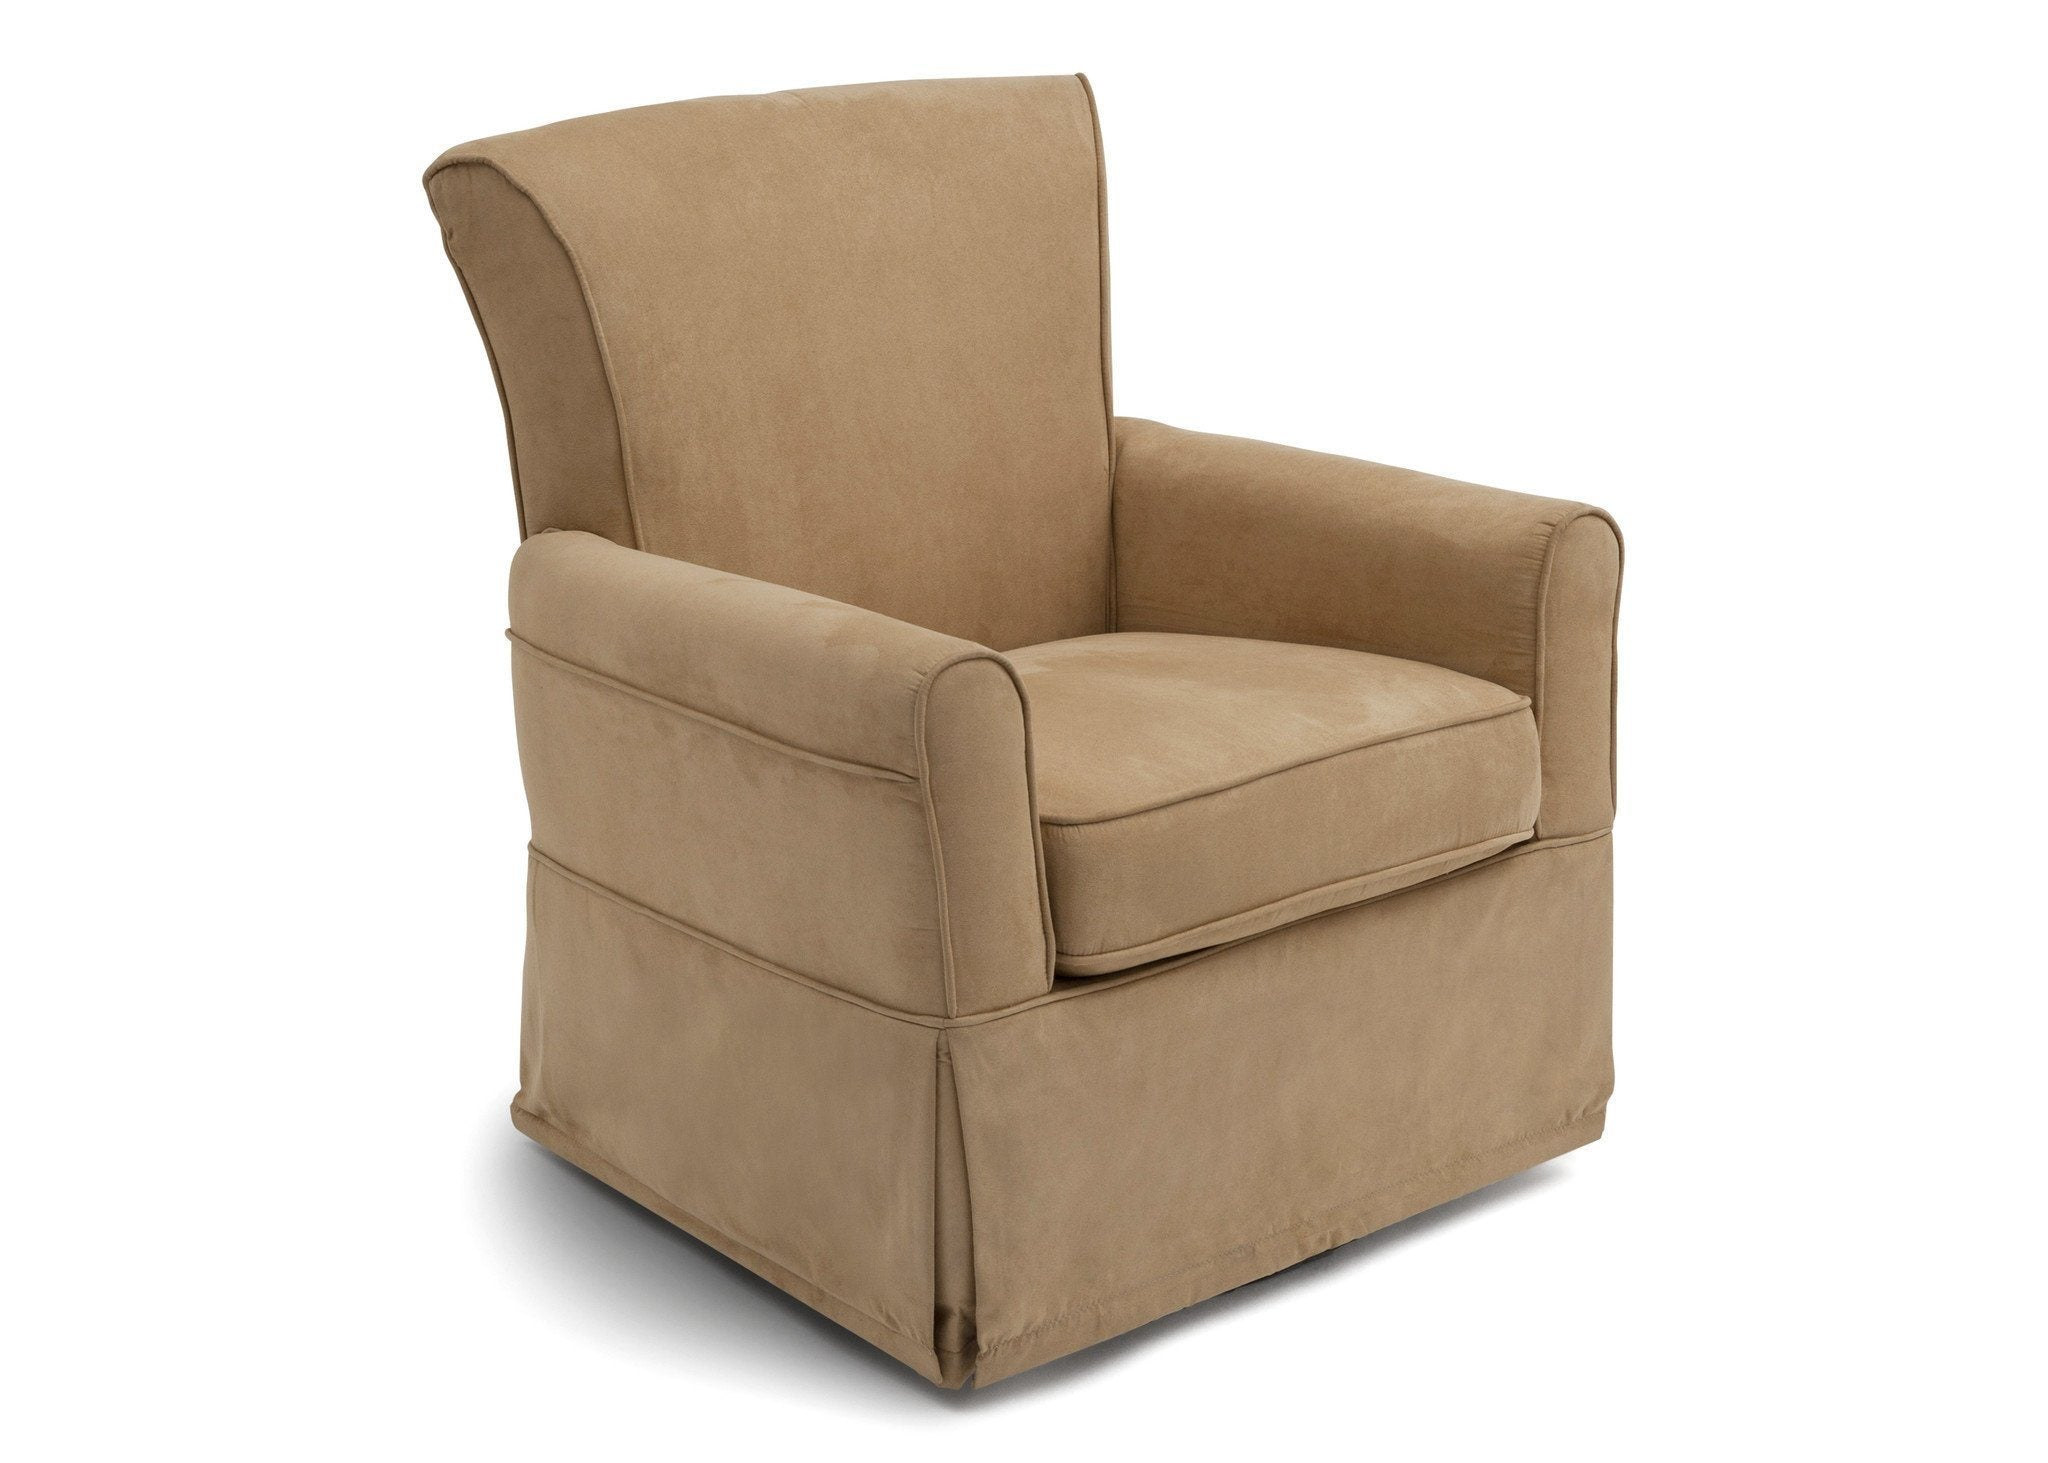 Delta Children Pebble Brown (920) Benton Glider Side View a1a